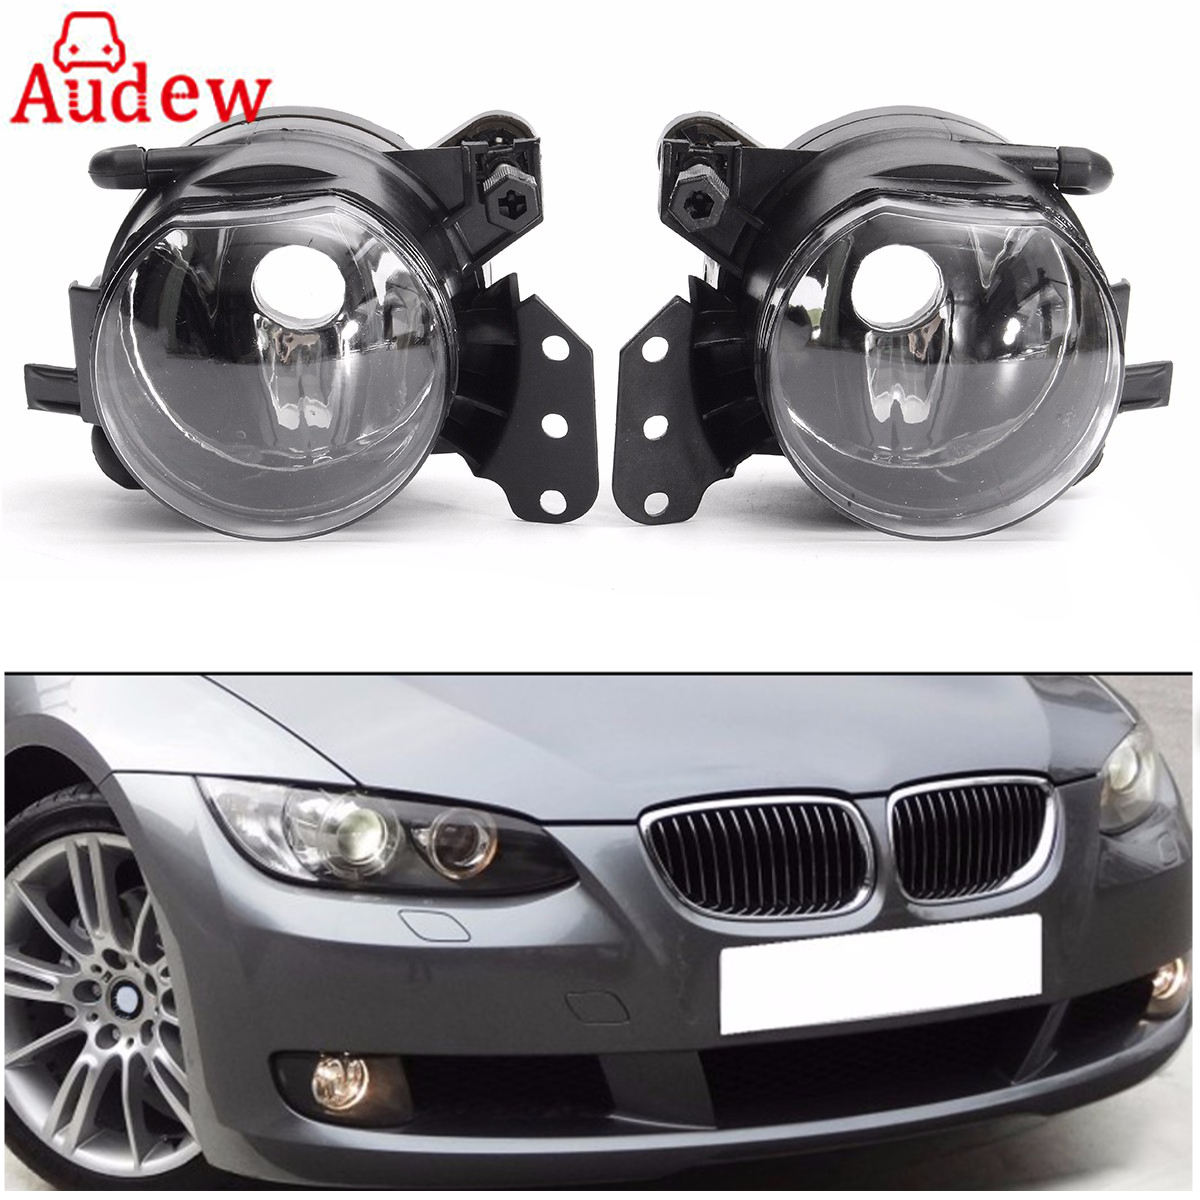 1Pair Fog Light Assembly Car Front Fog Lights Lamps Housing Lens Clear No Bulbs For BMW E60 E90 E63 E46 323i 325i 525i